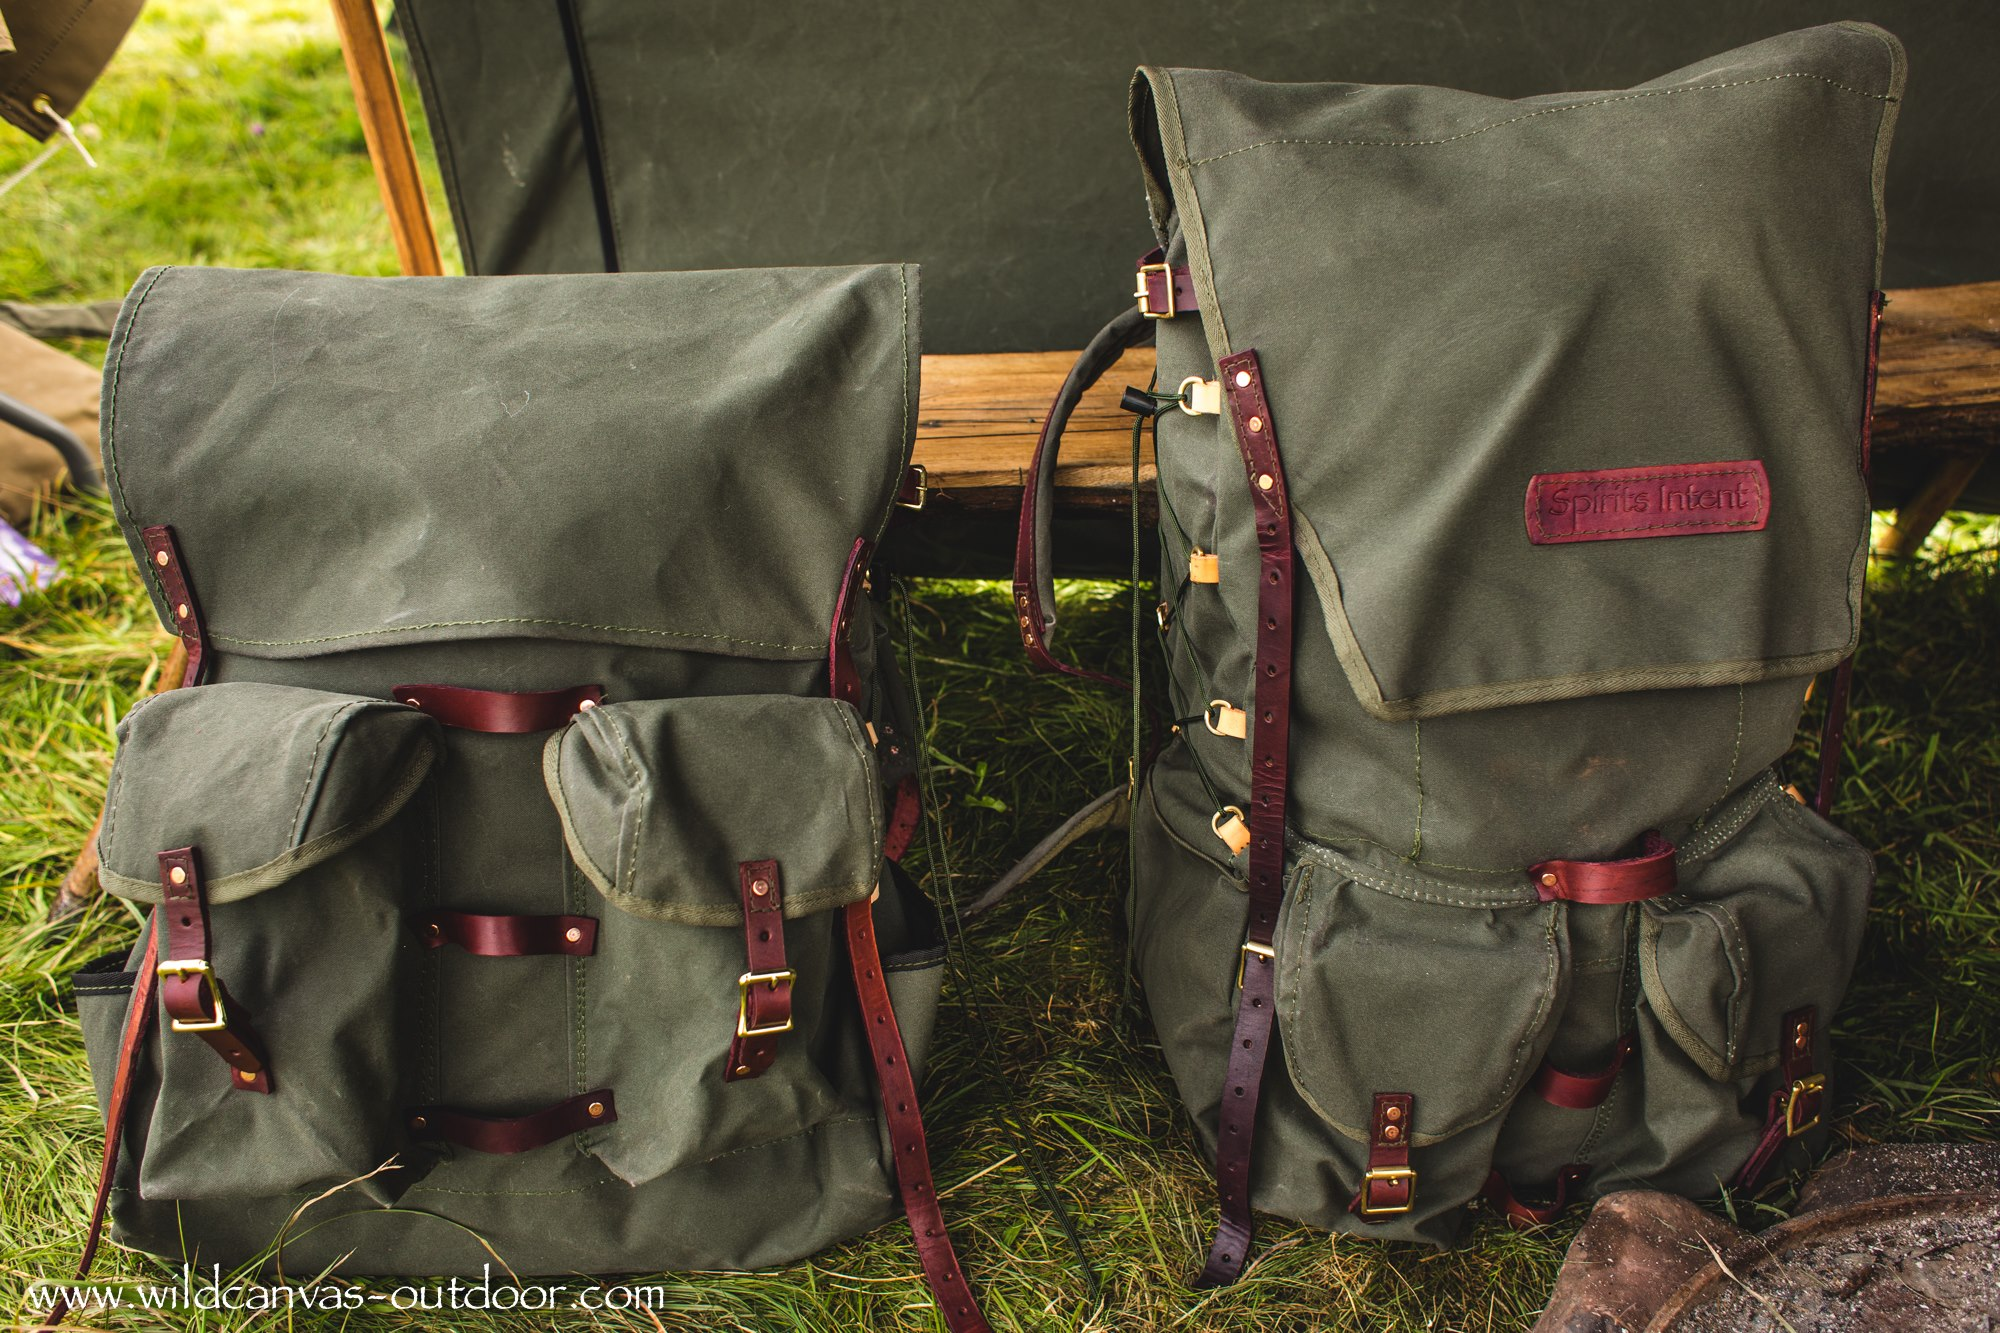 The Ultimate Bushcraft Pack and Basic Bushcraft Pack Front View